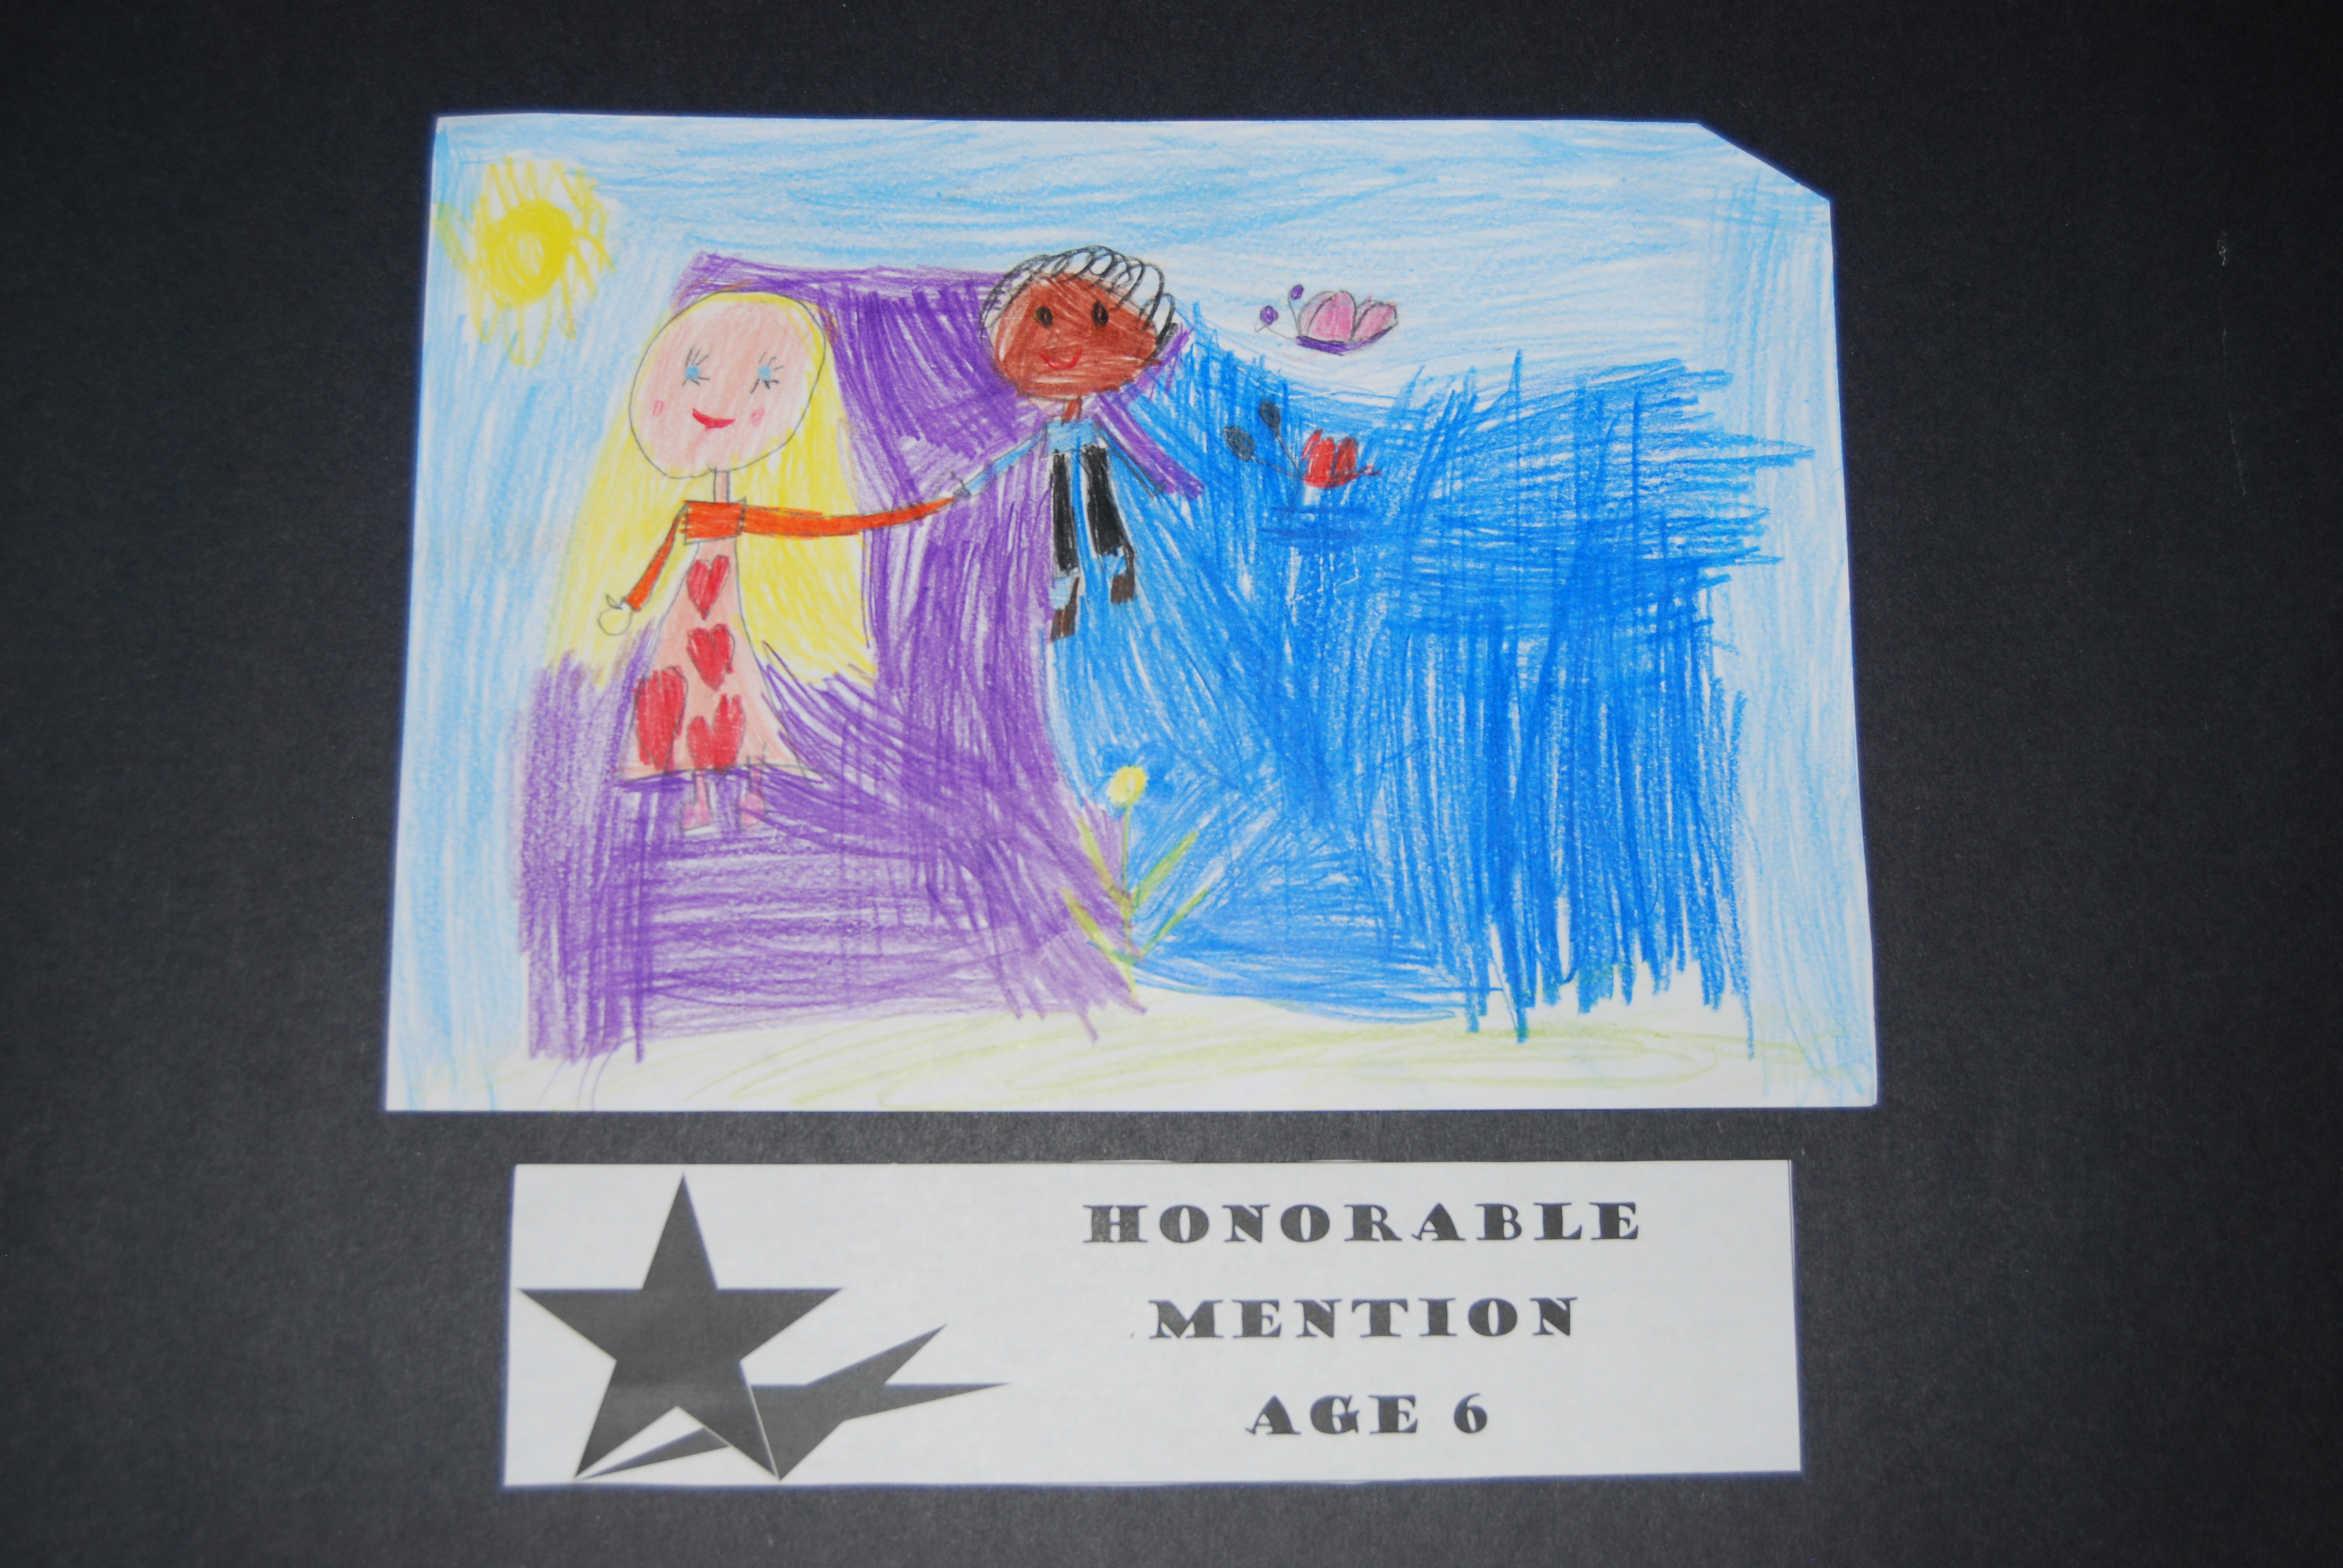 Drawing Peace Honorable Mention Age 6